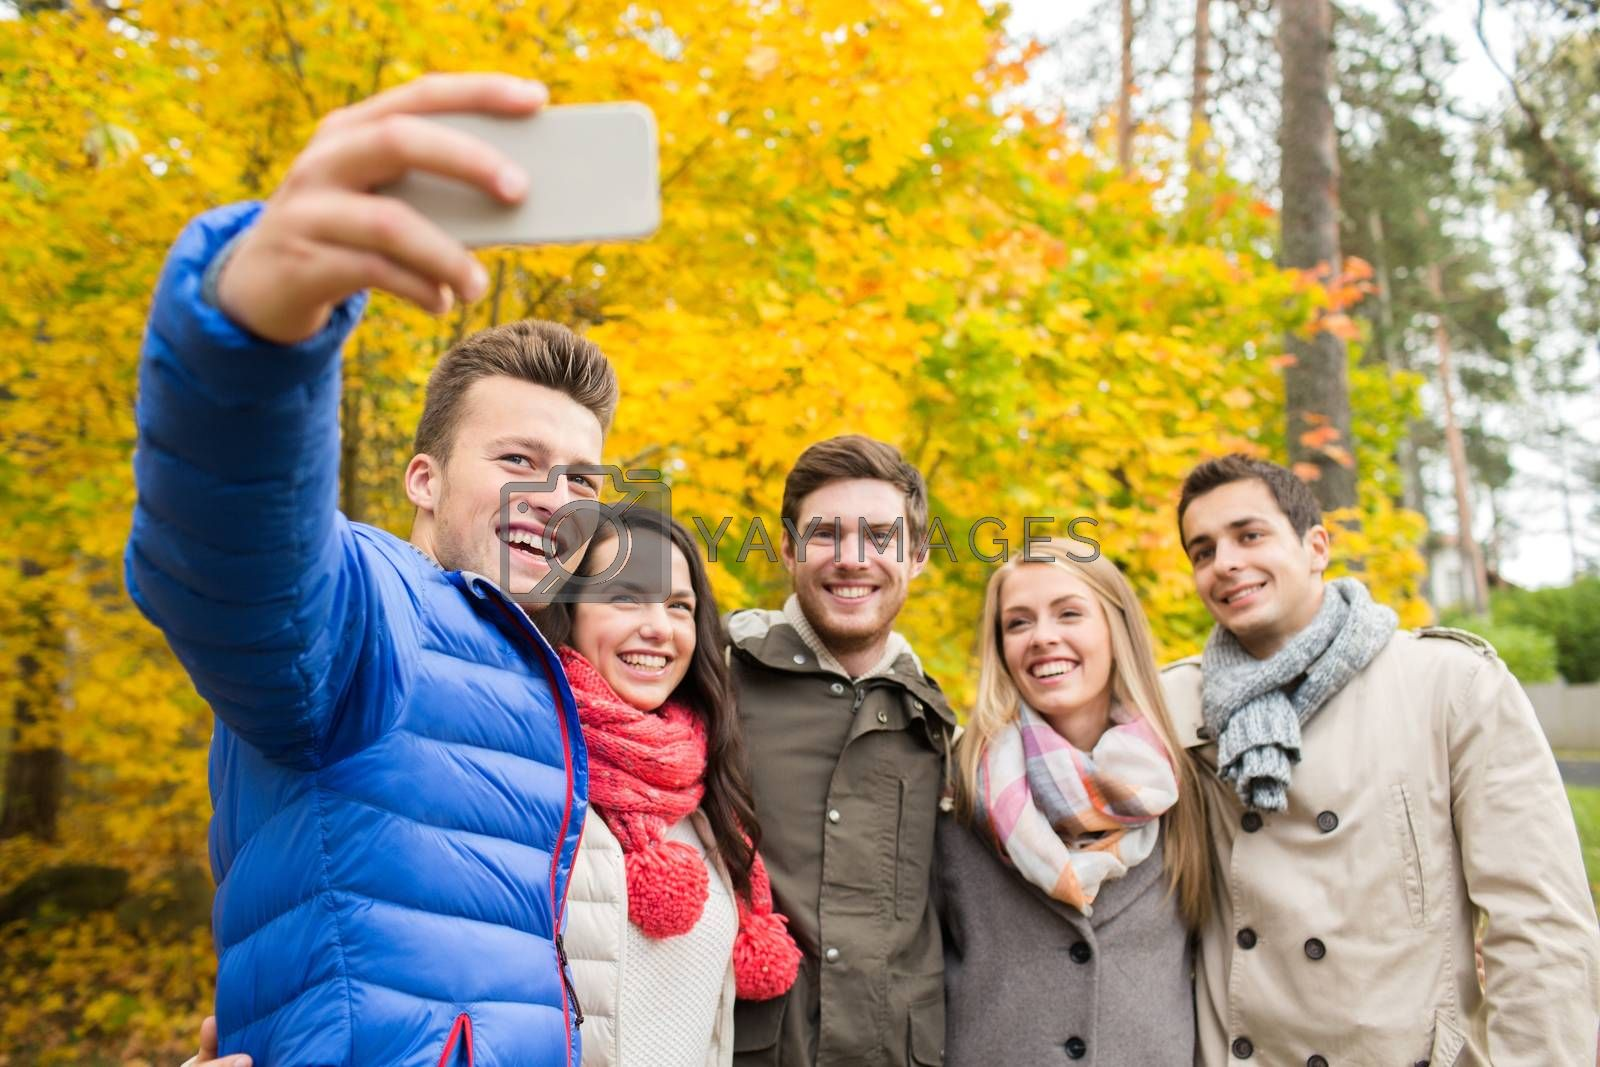 season, people, technology and friendship concept - group of smiling friends with smartphone taking selfie in autumn park